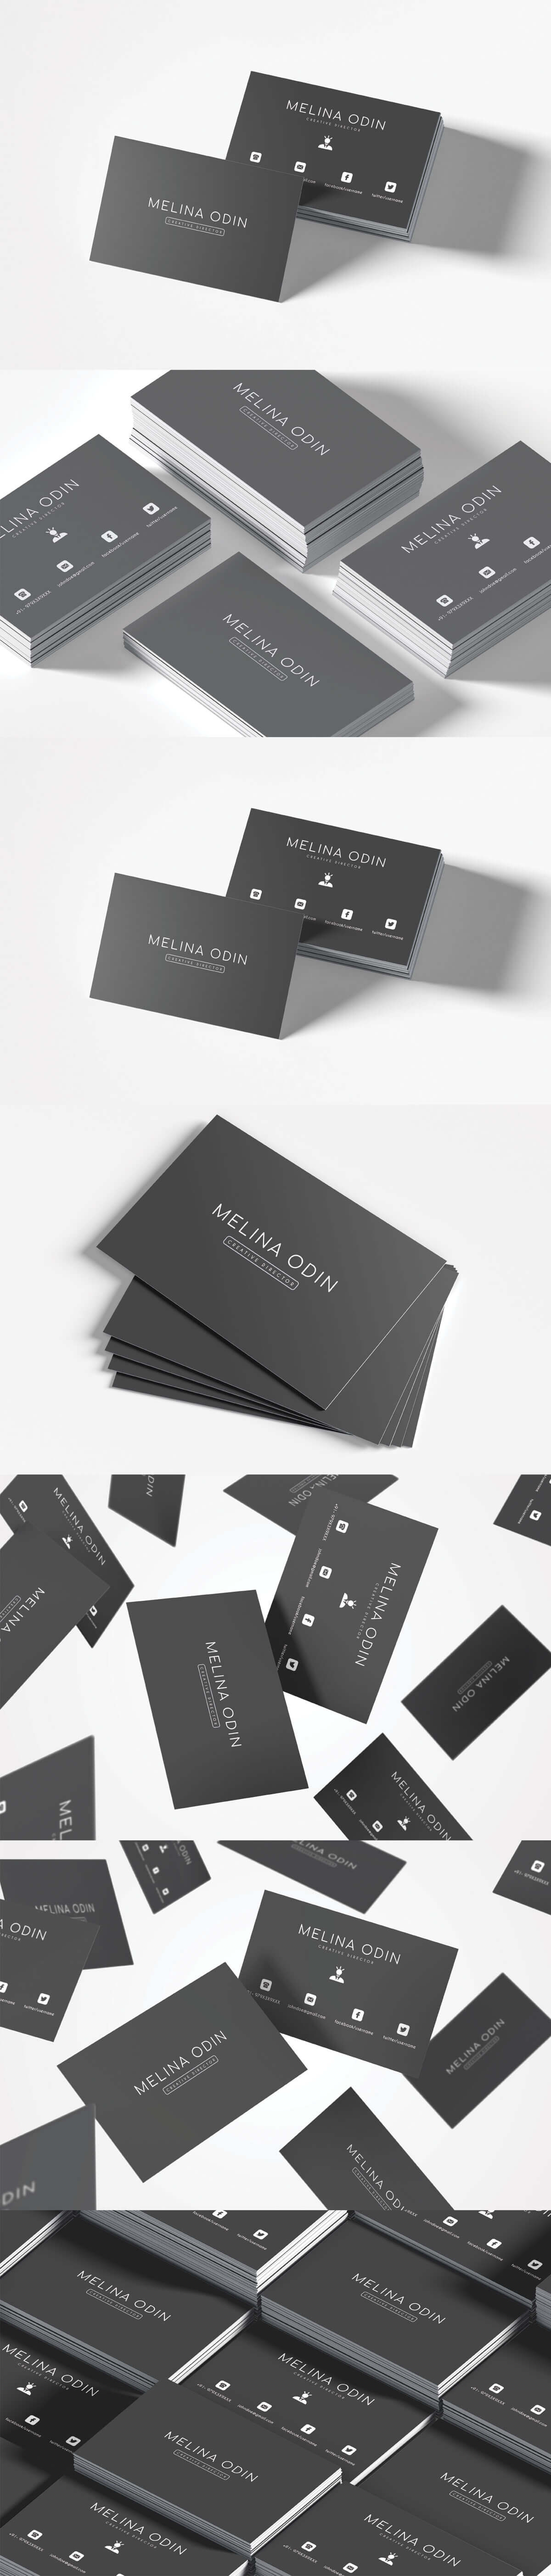 Free Creative Design Business Card Template